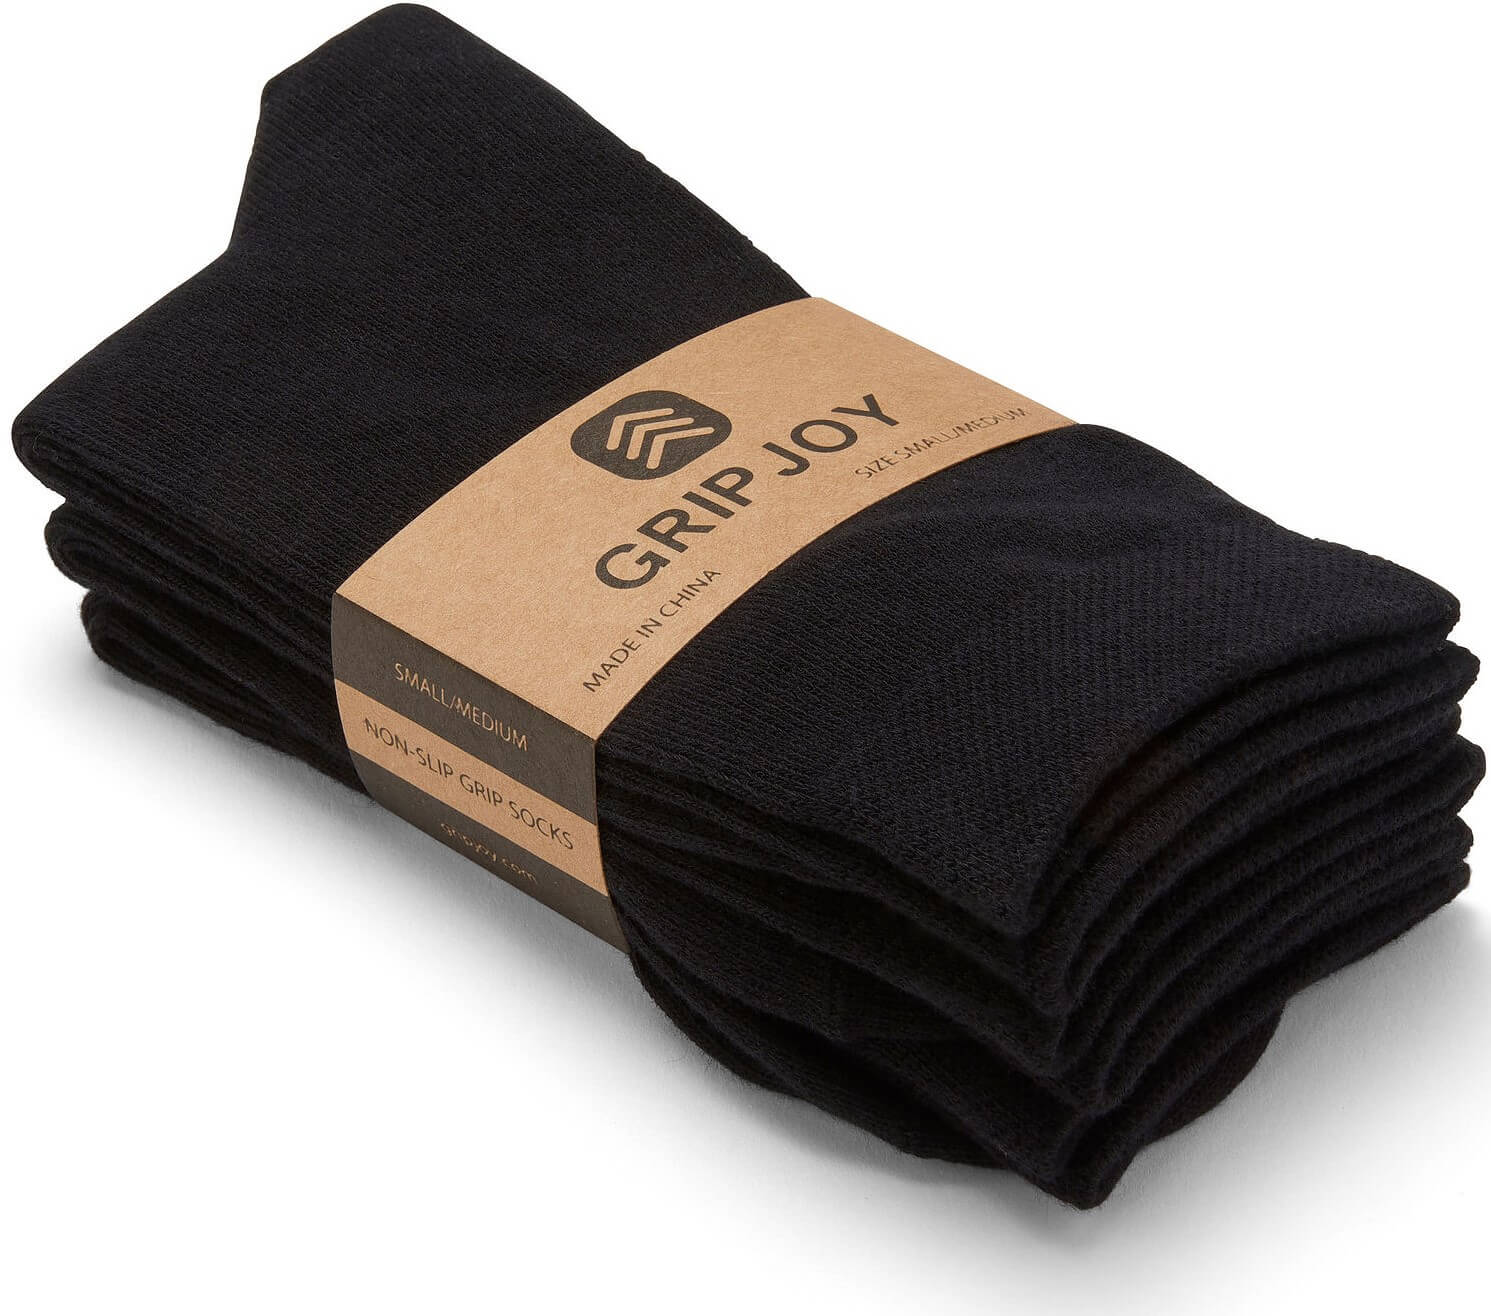 Gripjoy Men's Crew Grip Socks Black 3-Pack - Gripjoy Socks